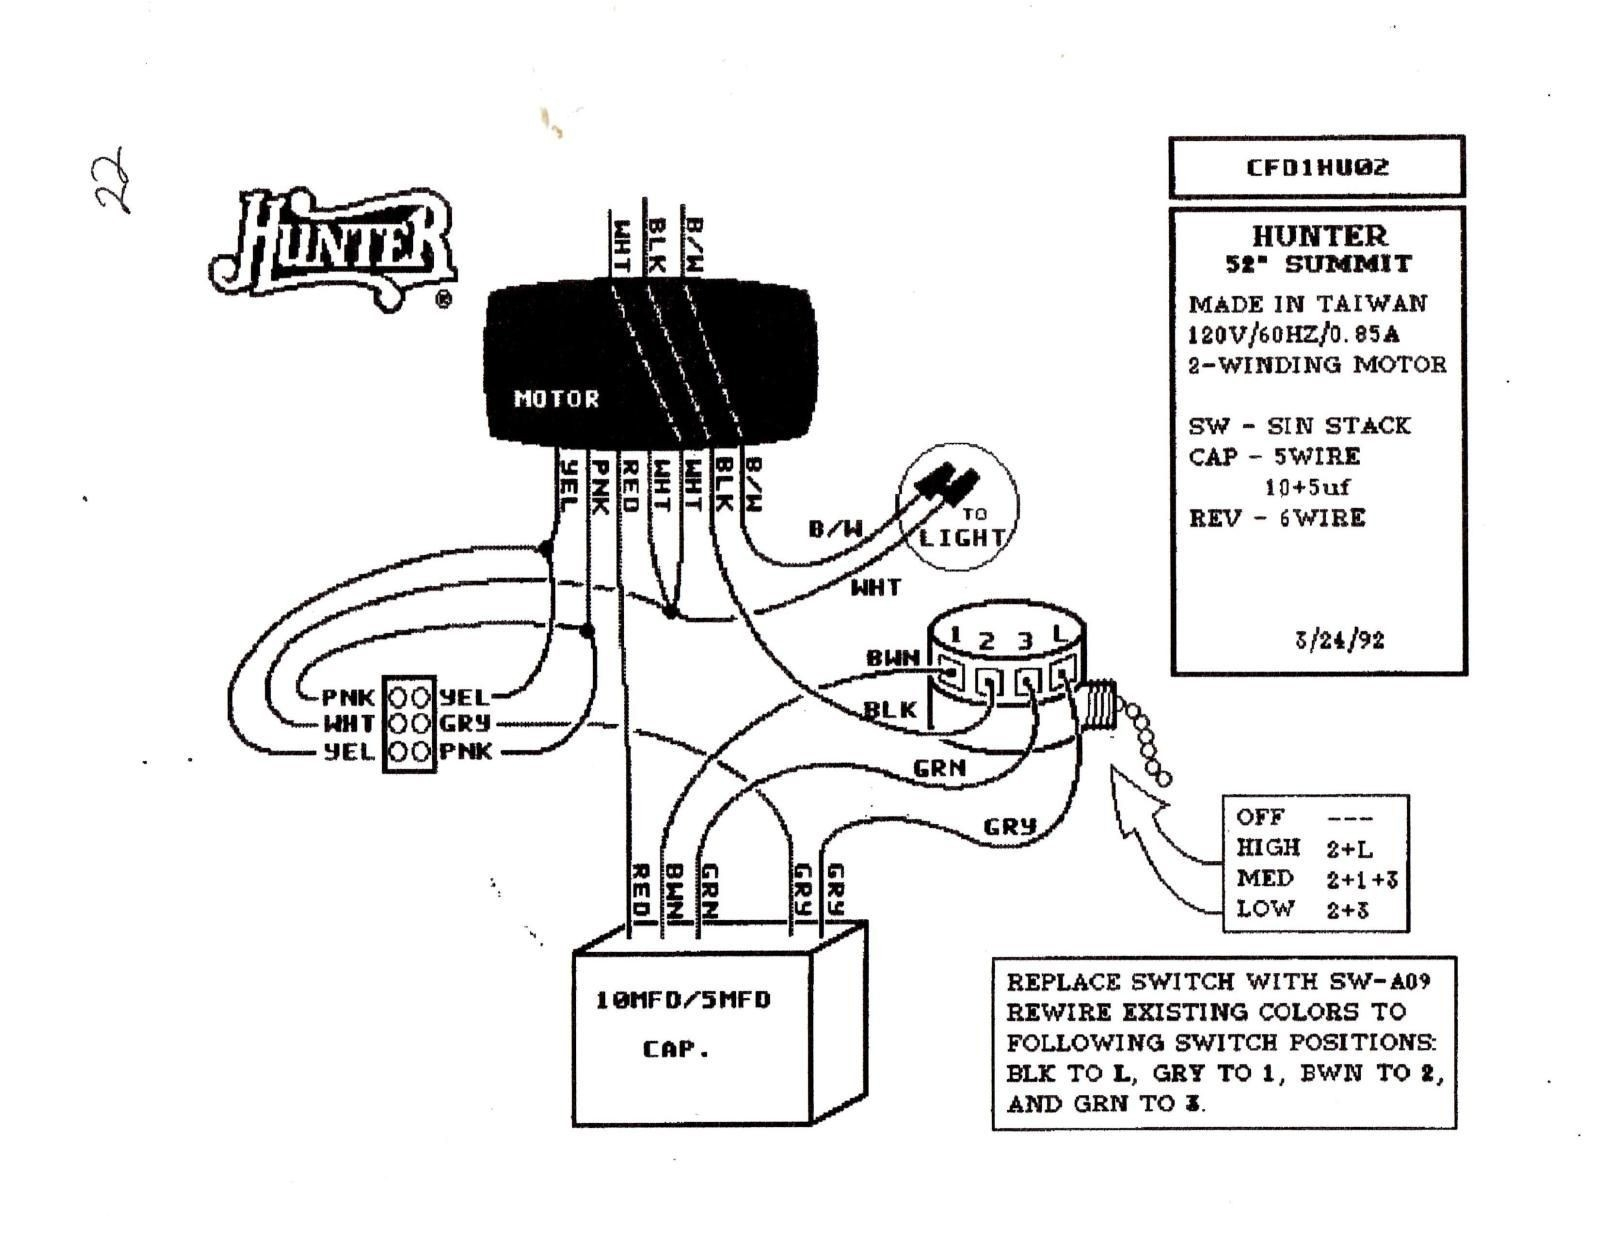 westinghouse ceiling fan wiring diagram